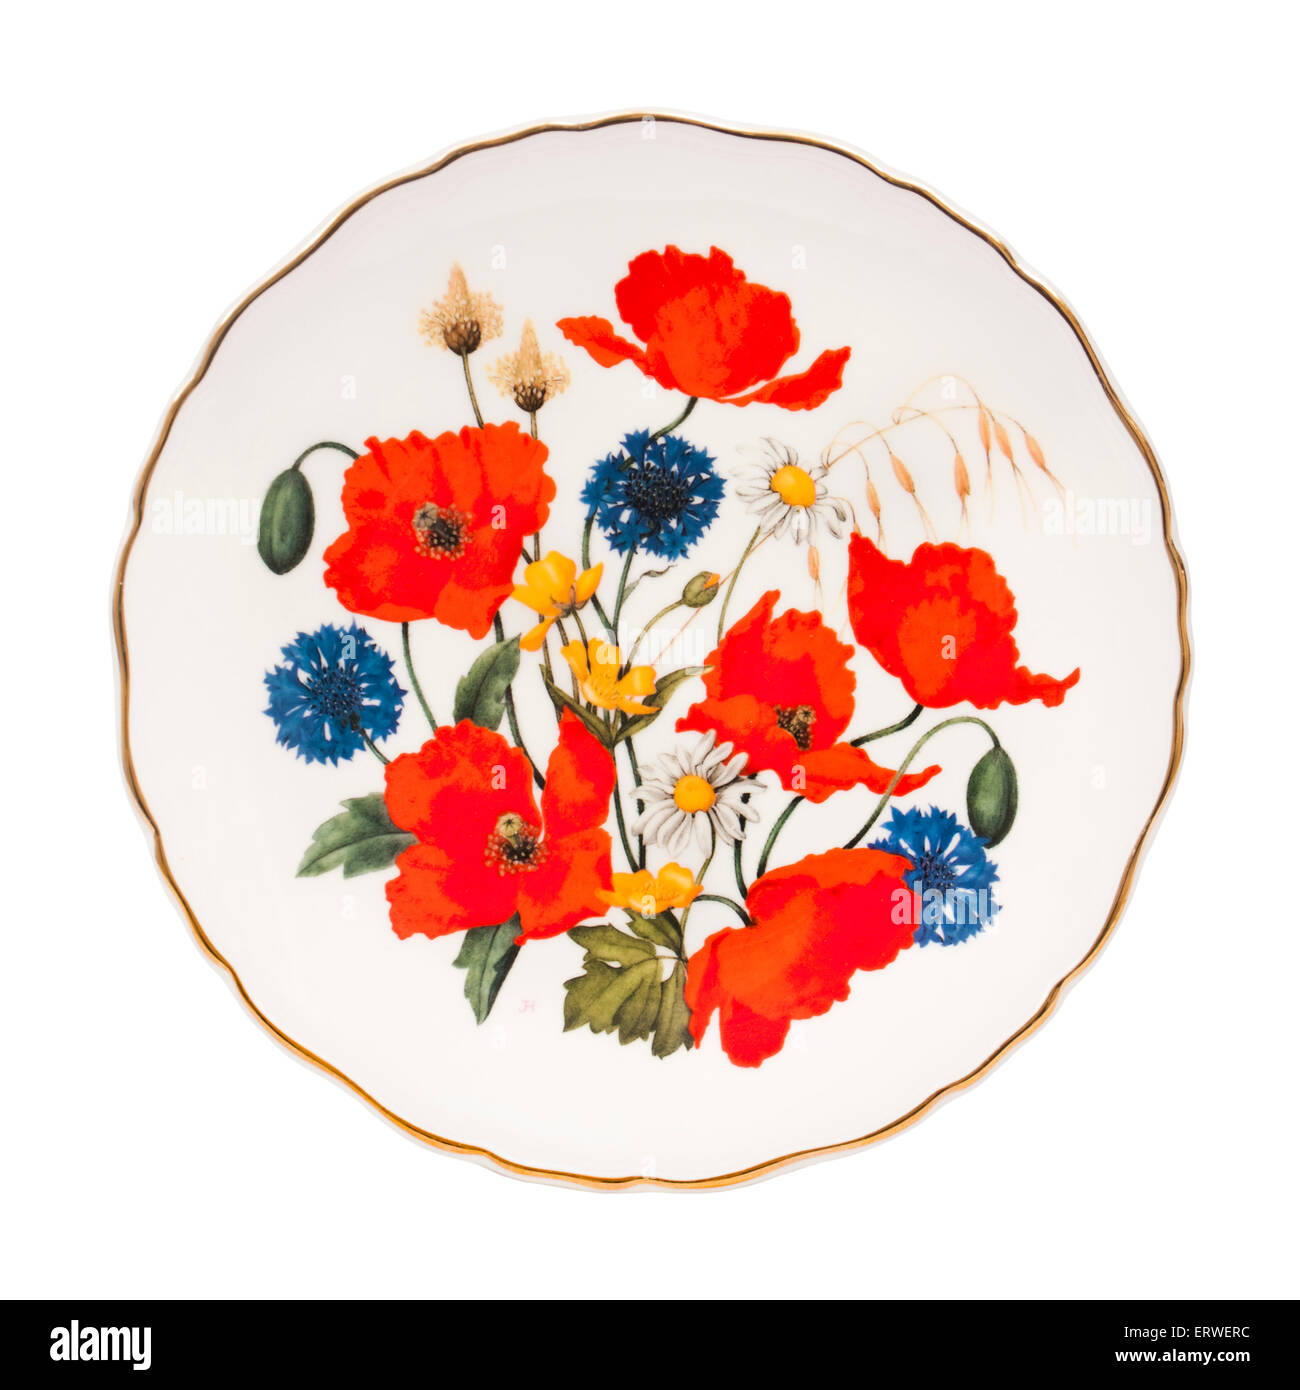 Royal Albert bone china decorative plate -  Cornfield Poppies  by Jo Hague the 1st issue in the  Britainu0027s Wild Flowers  series  sc 1 st  Alamy & Royal Albert bone china decorative plate -